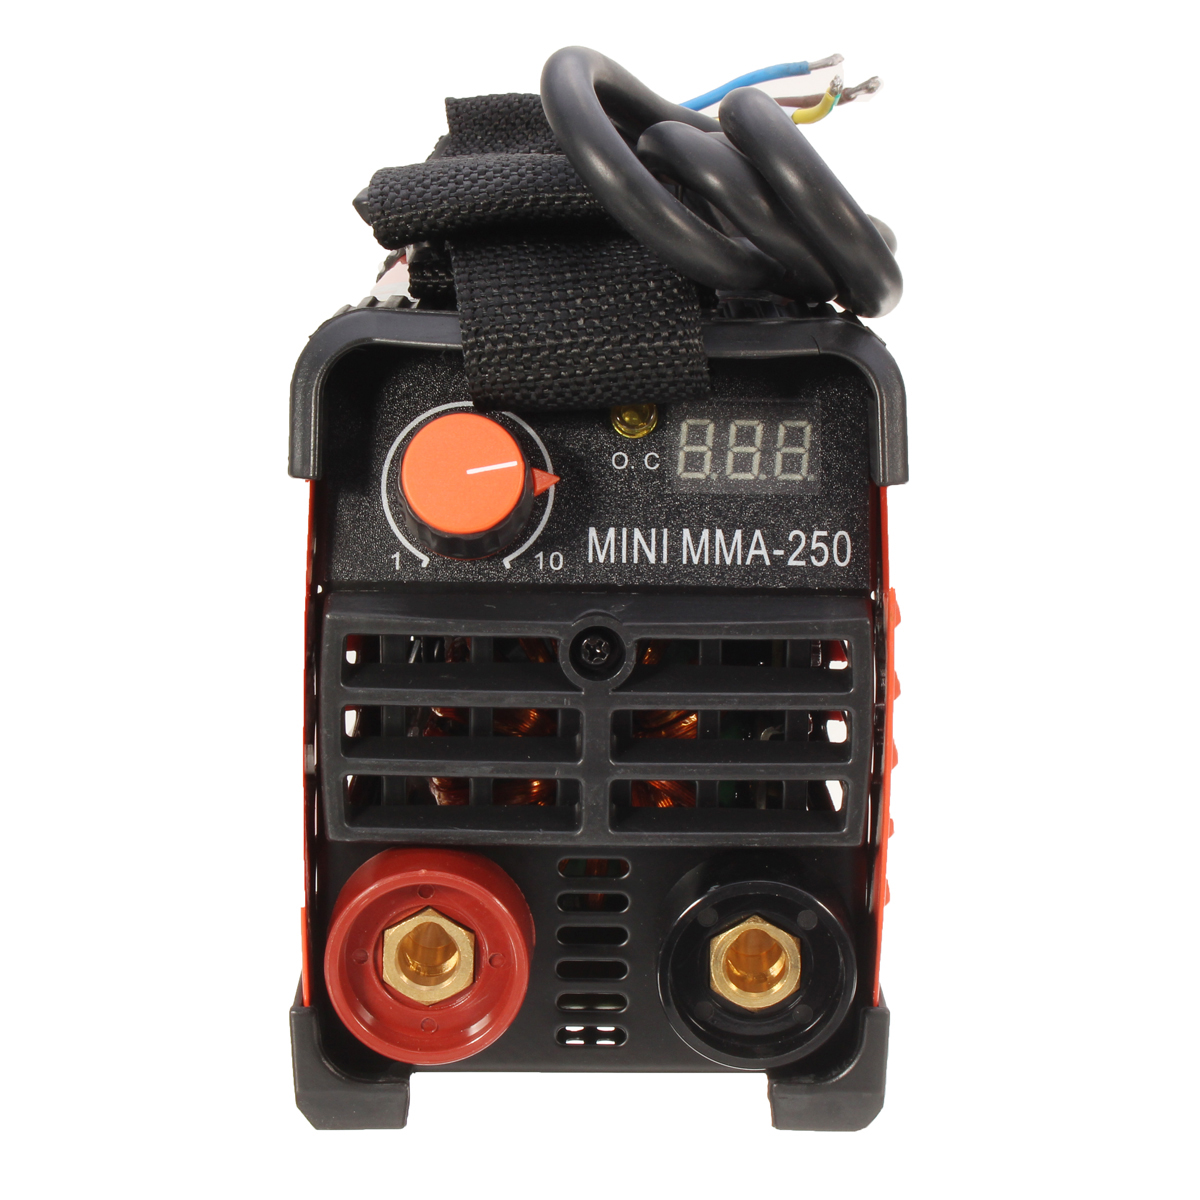 220V 20-250A Handheld Mini Electric Welding Inverter ARC Welding Machine Tool